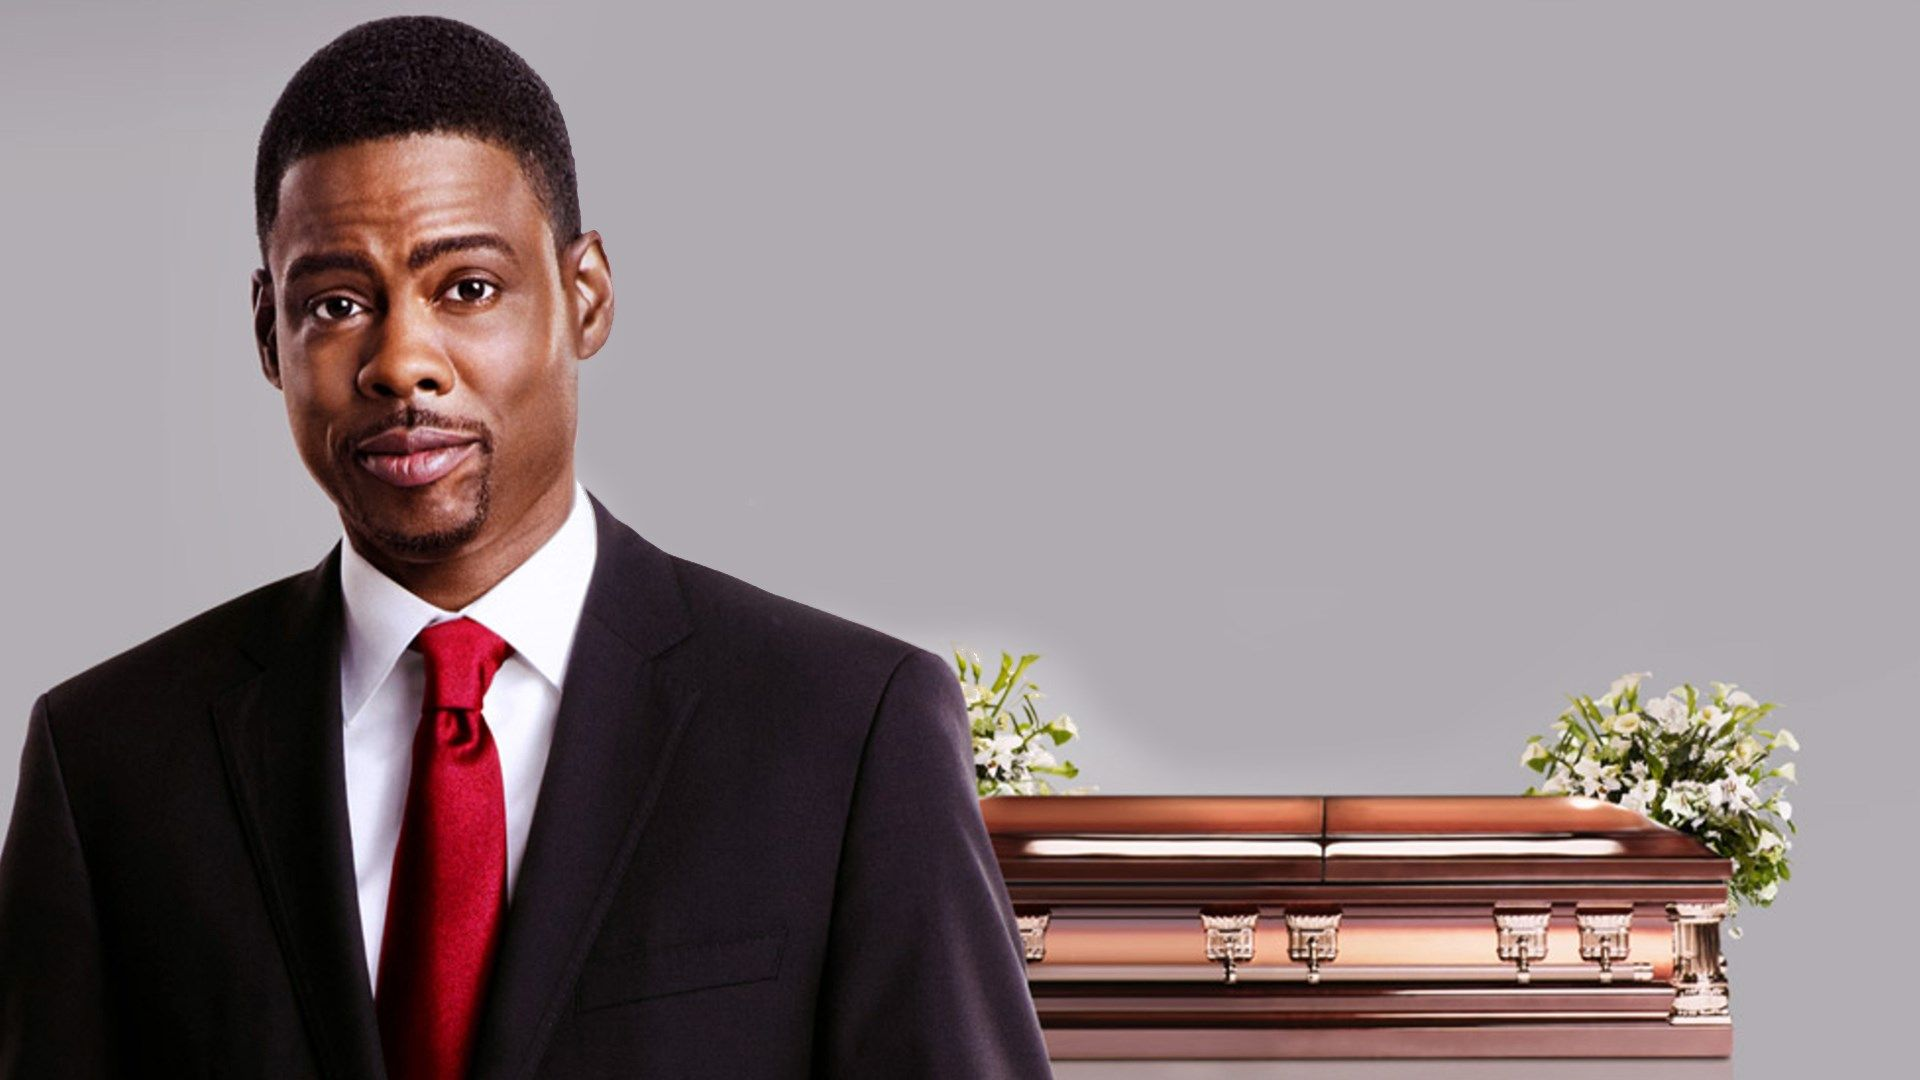 Darwin Fletcher - Full size death at a funeral 2010 pic - 1920x1080 px